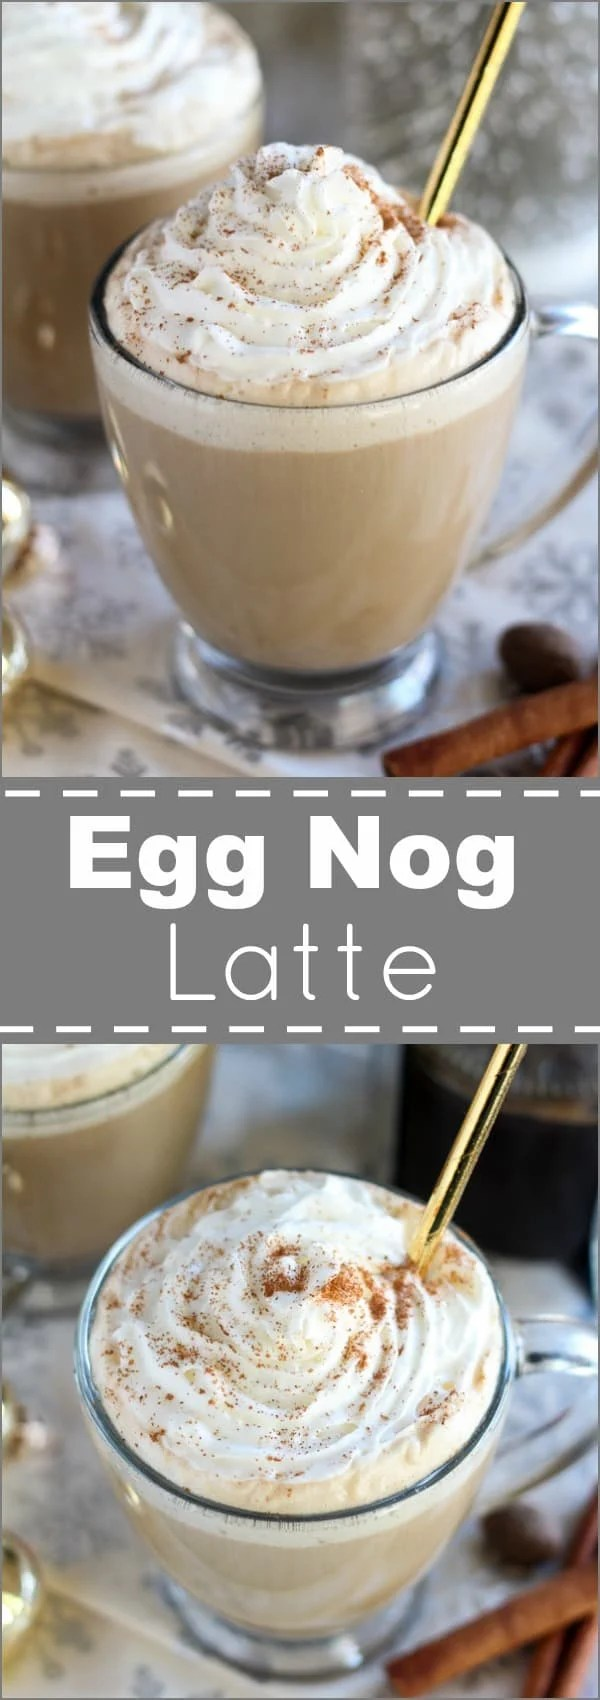 Egg Nog Lattes - Egg Nog Lattes blend the classic flavors of egg nog with coffee or espresso and a swirl of whipped cream. Try making this easy and festive holiday drink at home - you'll love every sip!